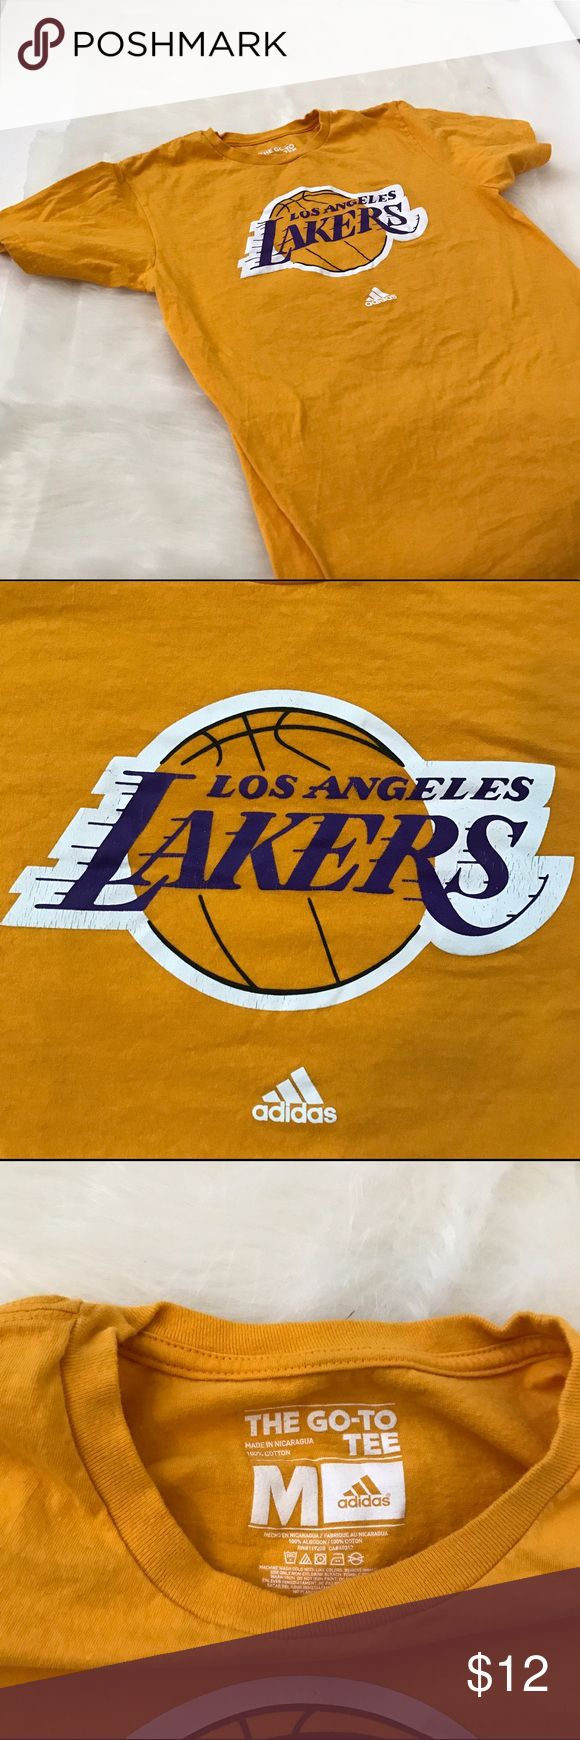 Nike Lakers T shirt Medium Lakers logo on a Nike to go tee shirt. Signs of distressed on logo as shown Nike Shirts Tees - Short Sleeve